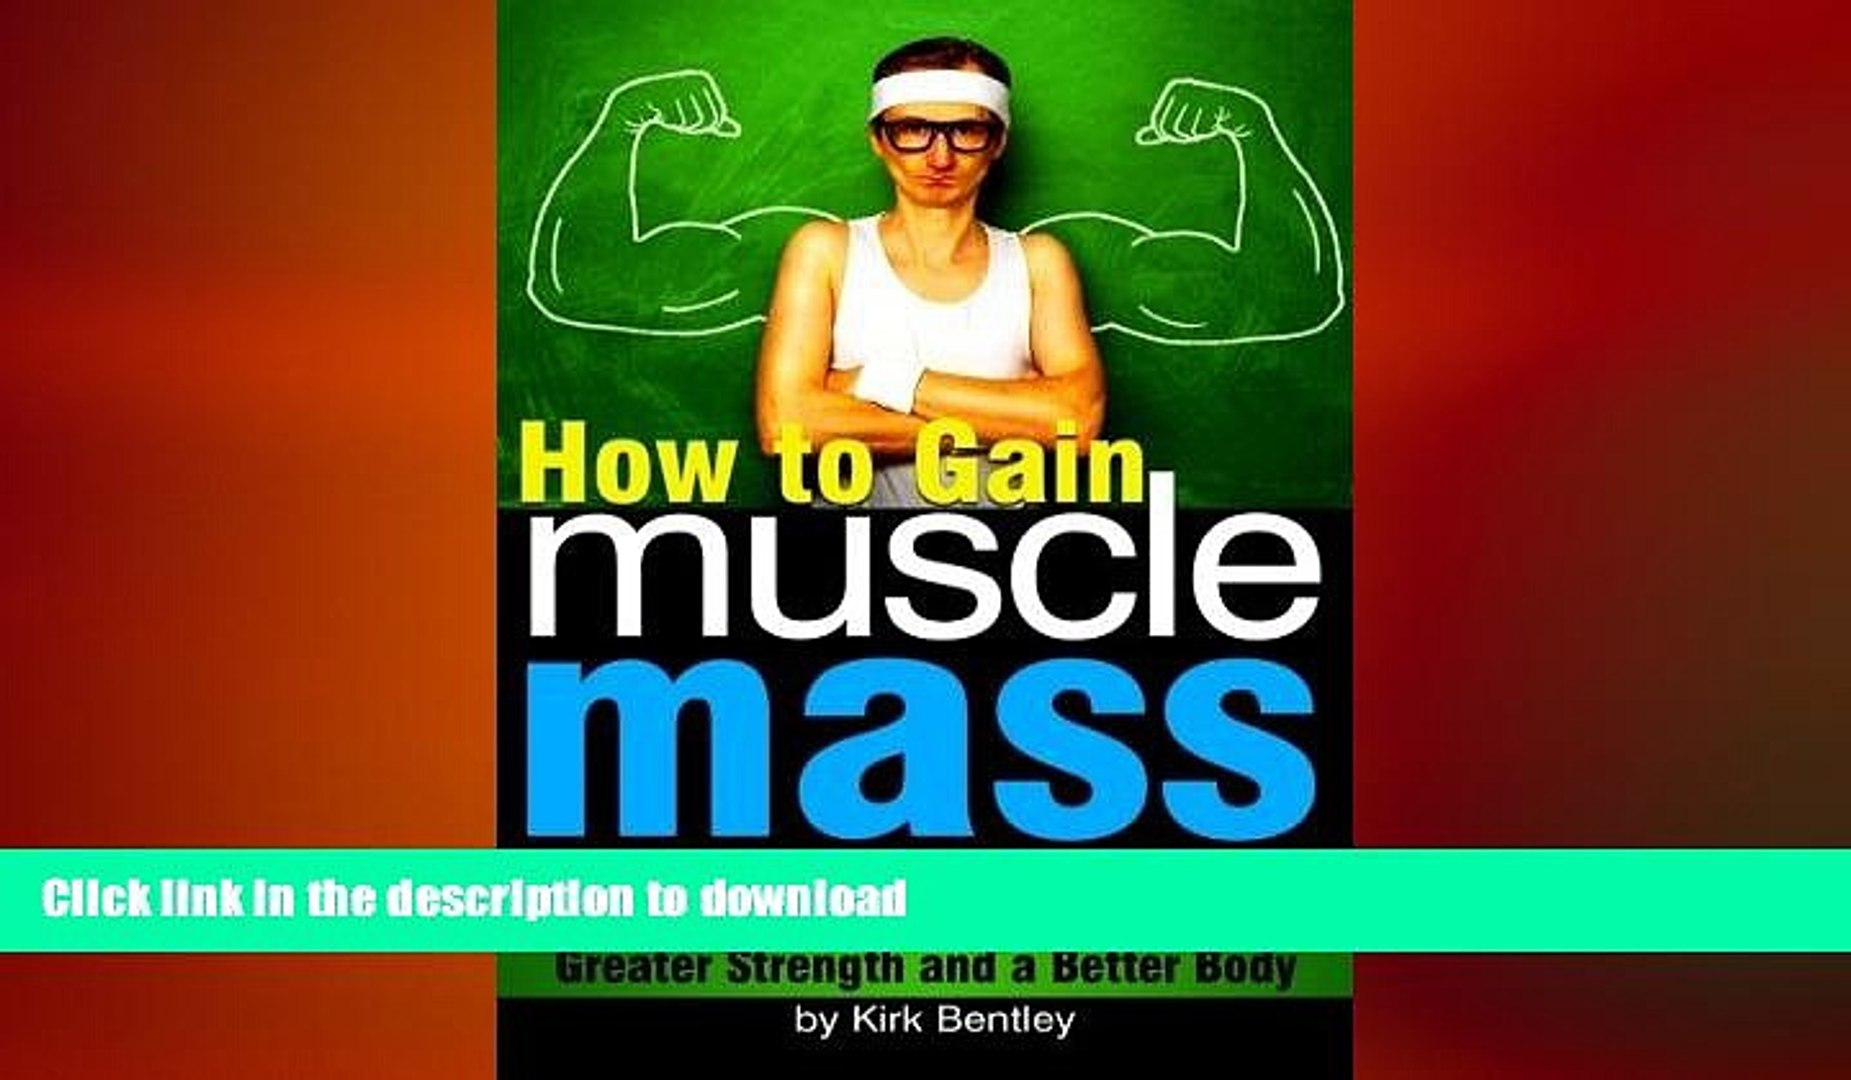 FAVORITE BOOK  How to Gain Muscle Mass: An Essential Diet and Exercise Guide to Building Muscle